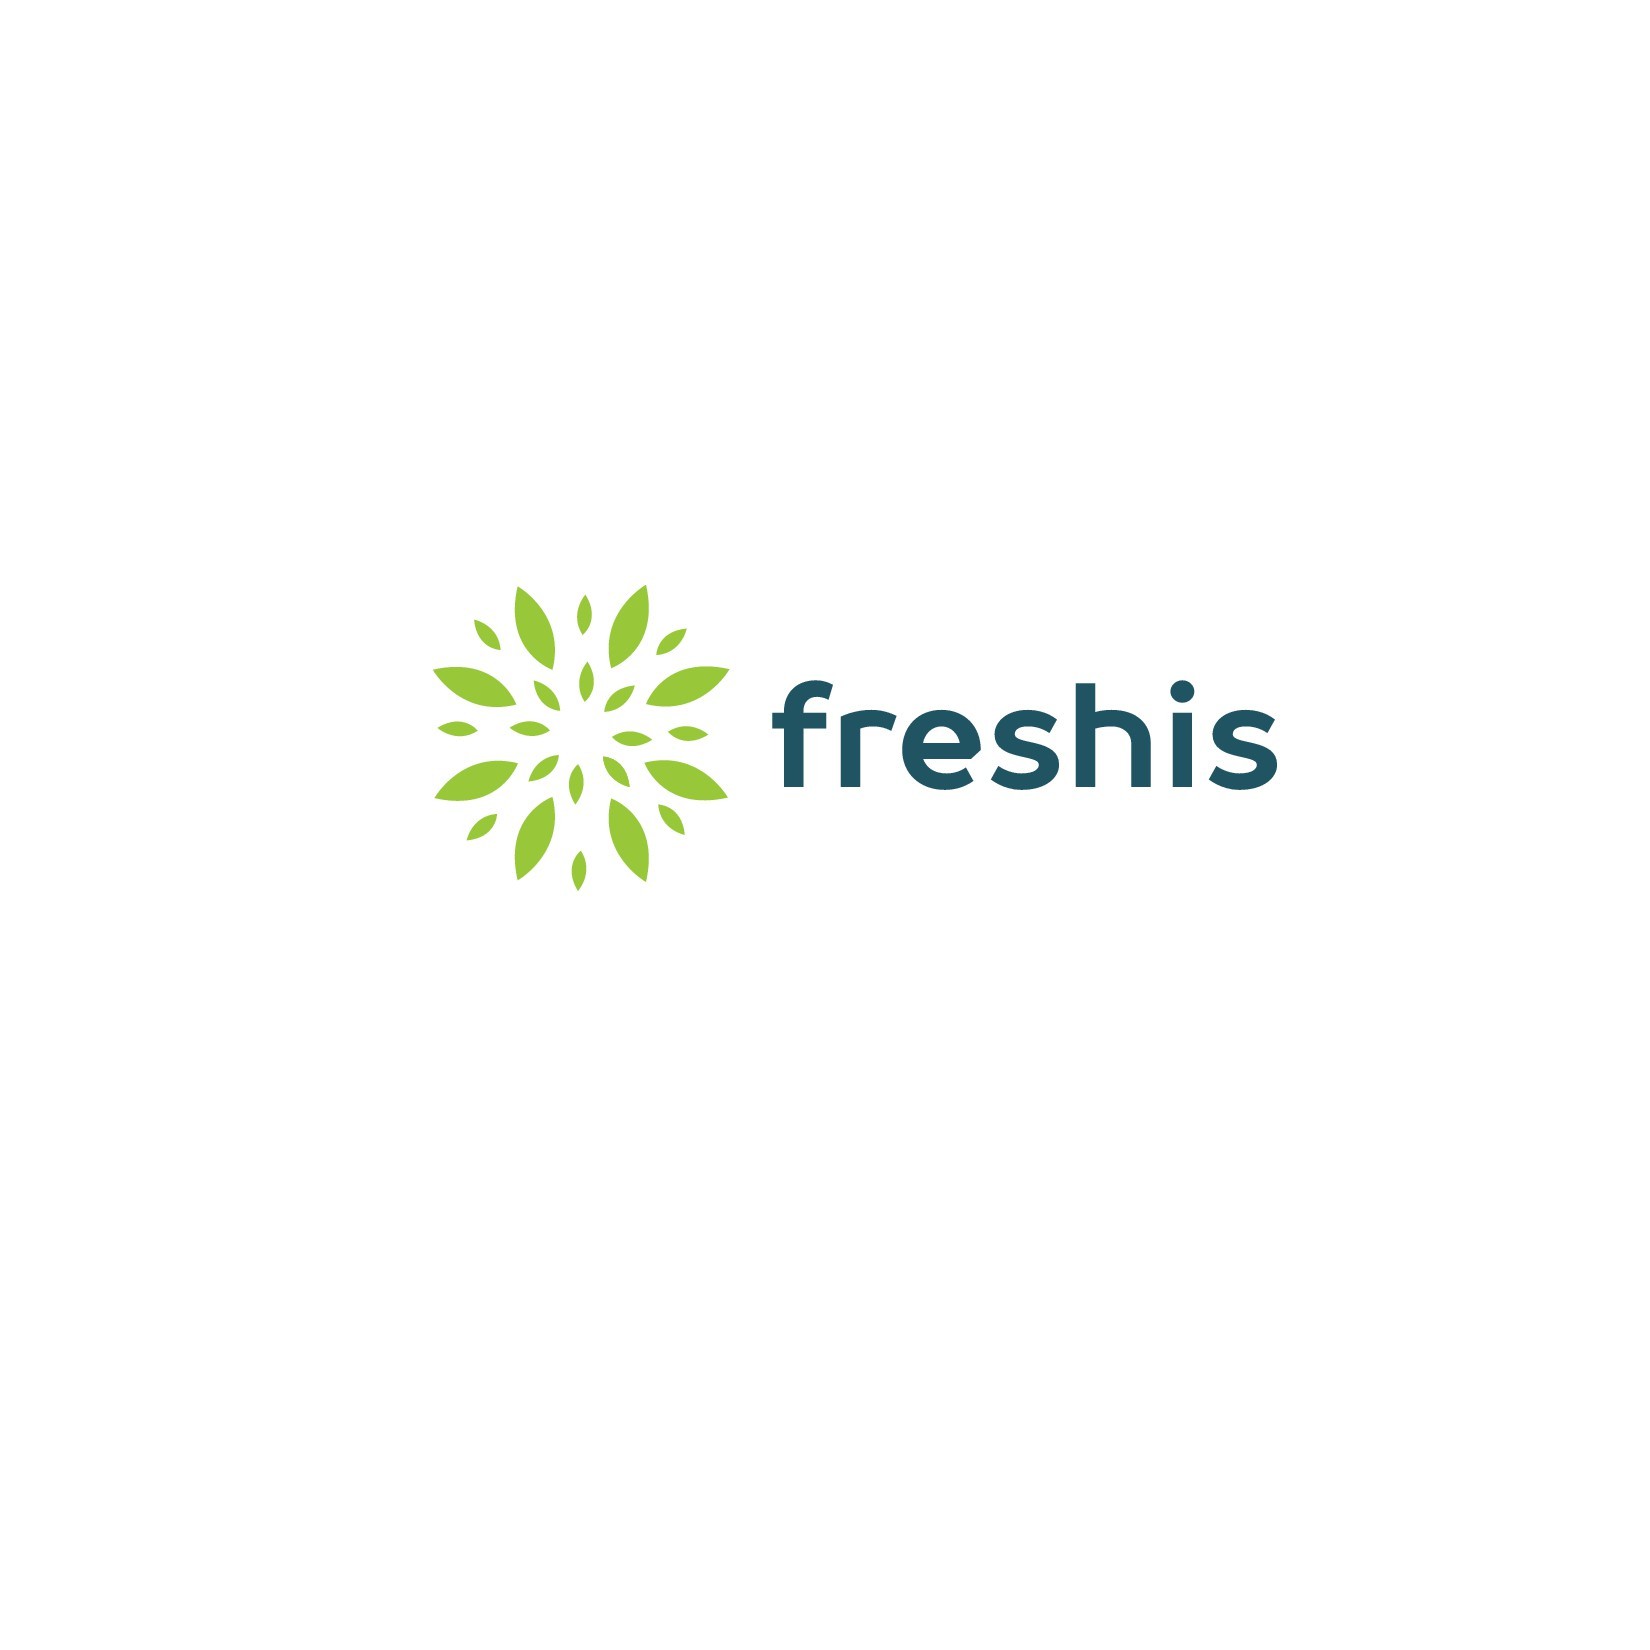 Design the future logo of fresh locally grown food